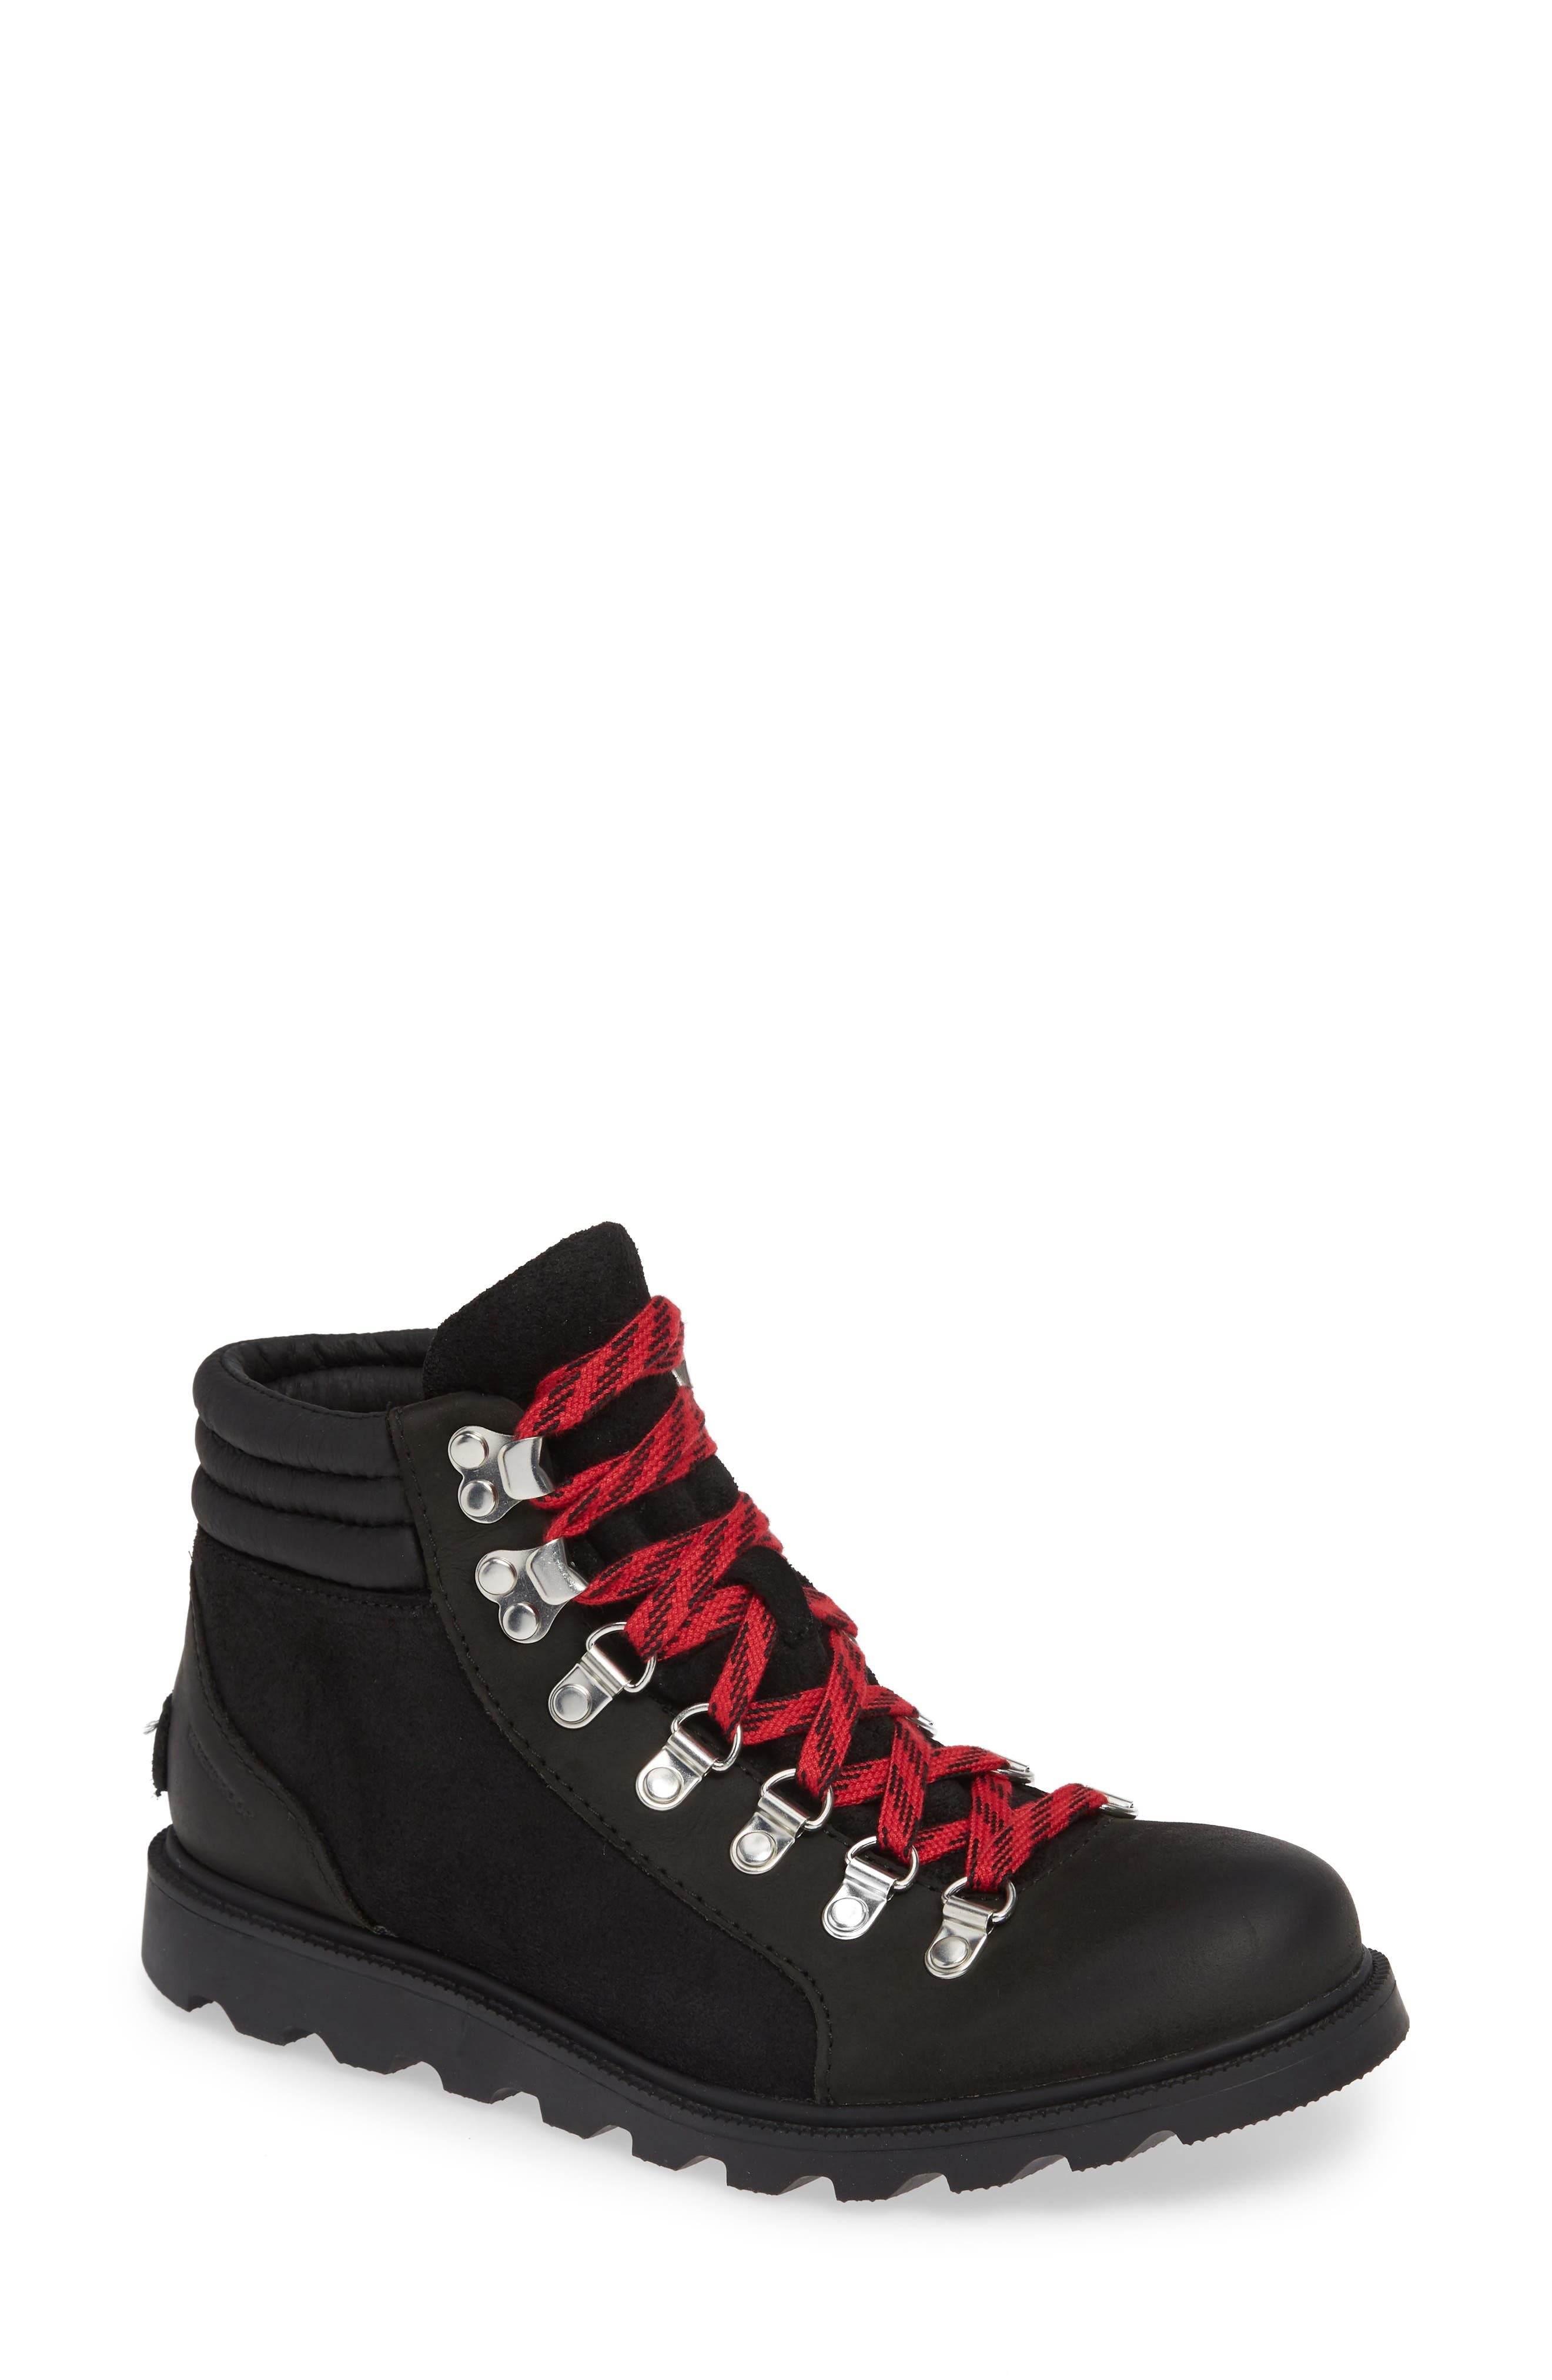 Sorel Ainsley Conquest Waterproof Boot- Black